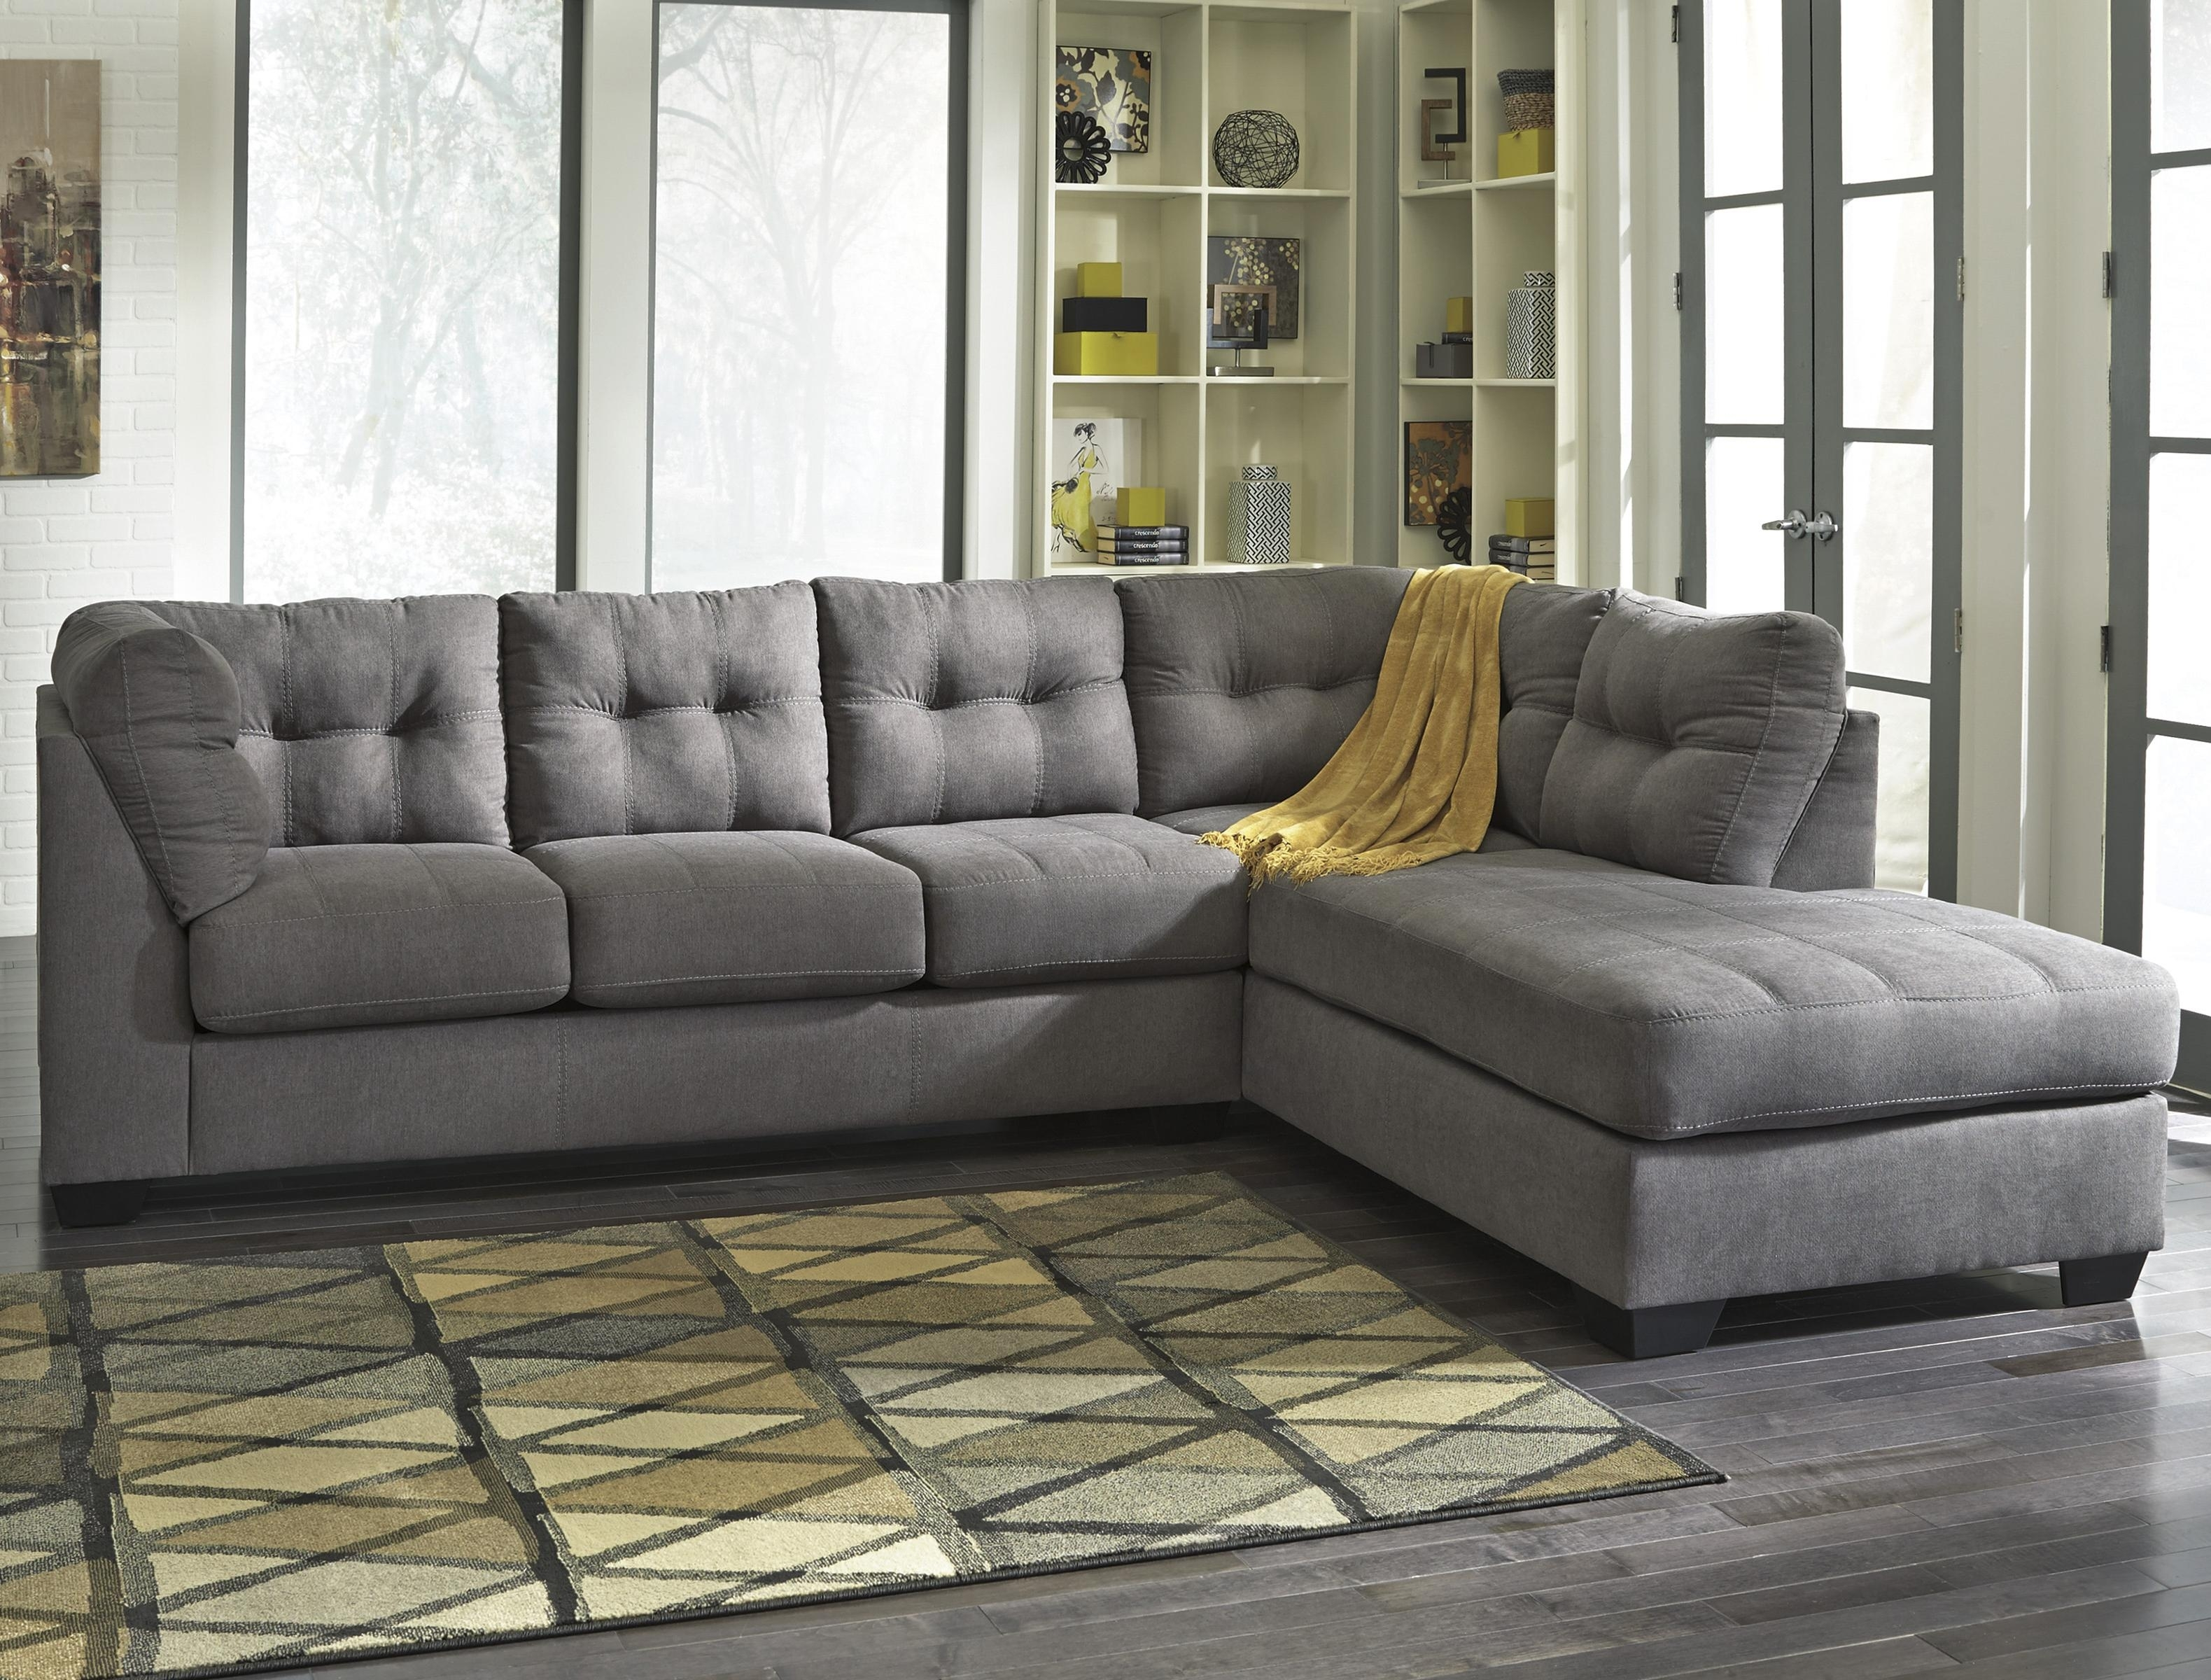 2 Piece Sectional With Right Chaisebenchcraft   Wolf And Intended For Lancaster Pa Sectional Sofas (Image 1 of 10)